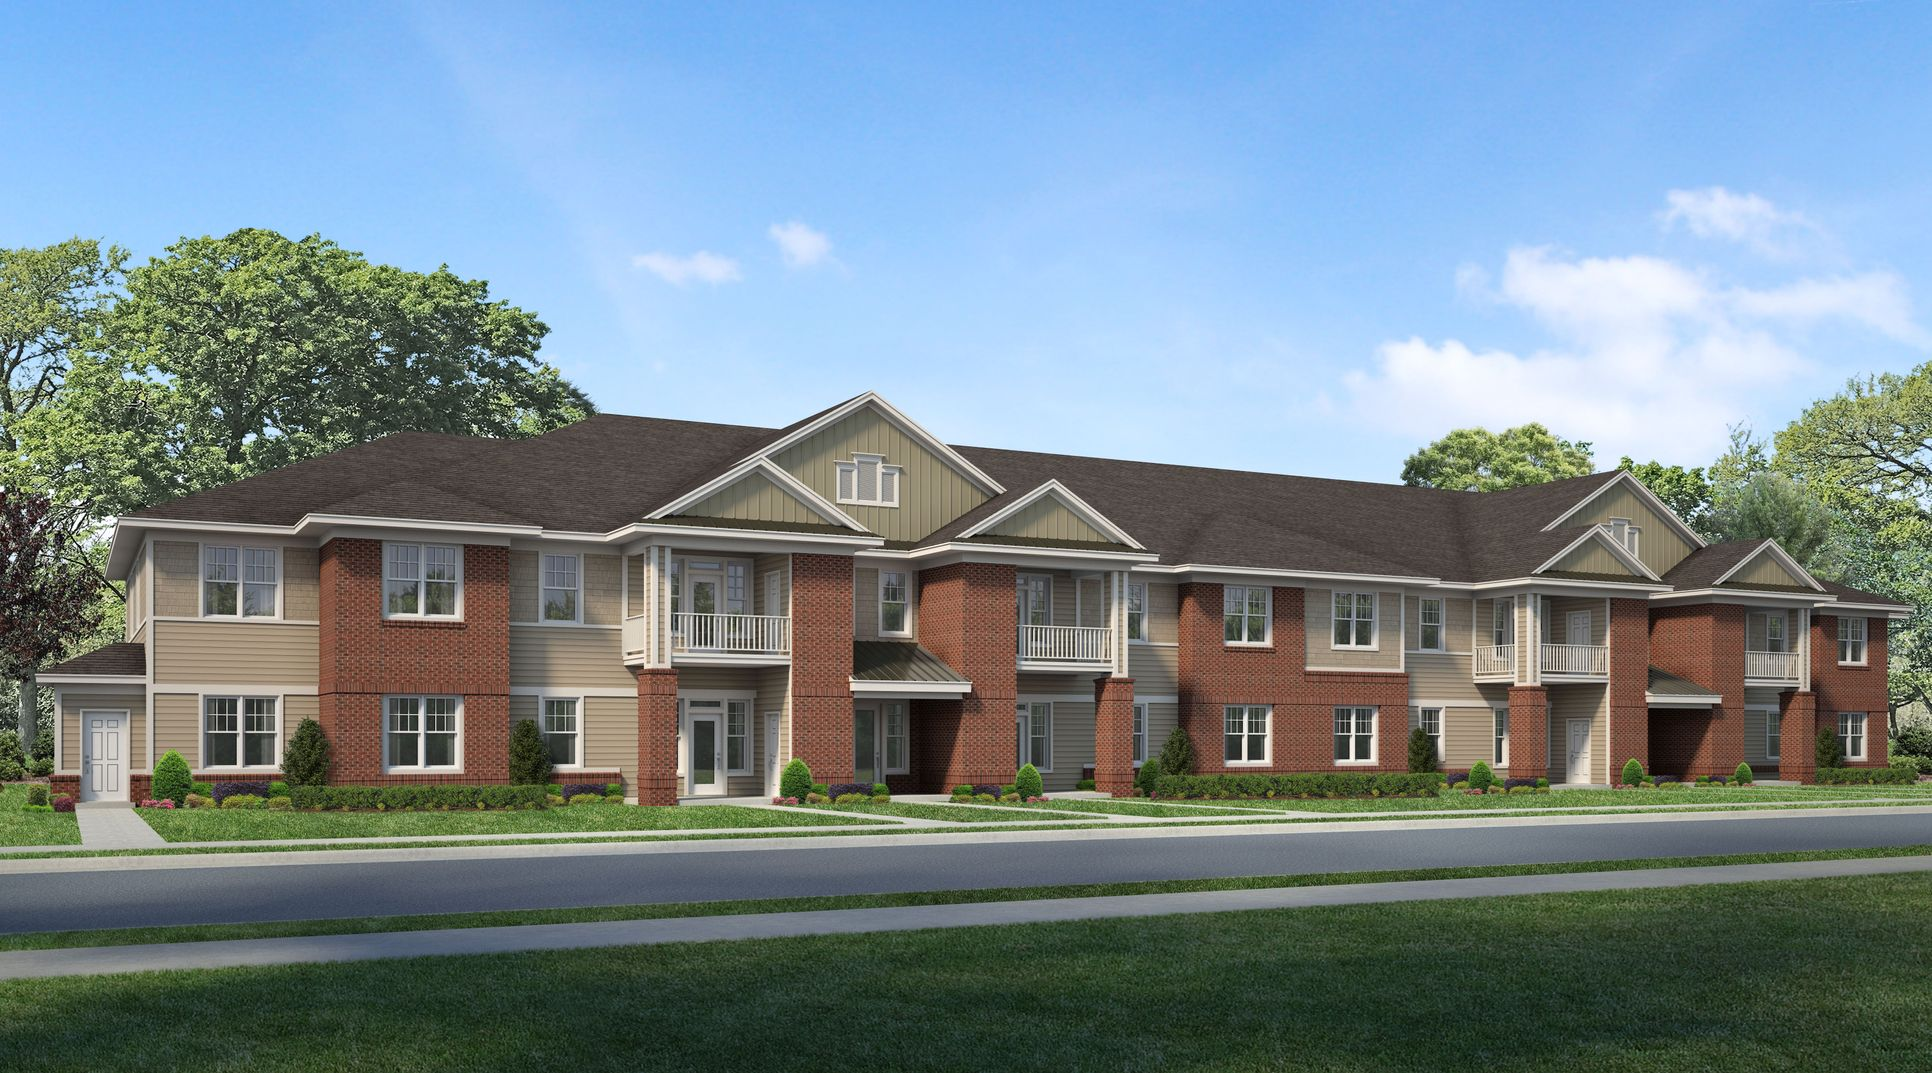 Weatherstone Creek New Condos in Cary:Weatherstone Creek New Condos in Cary priced under $300,000!